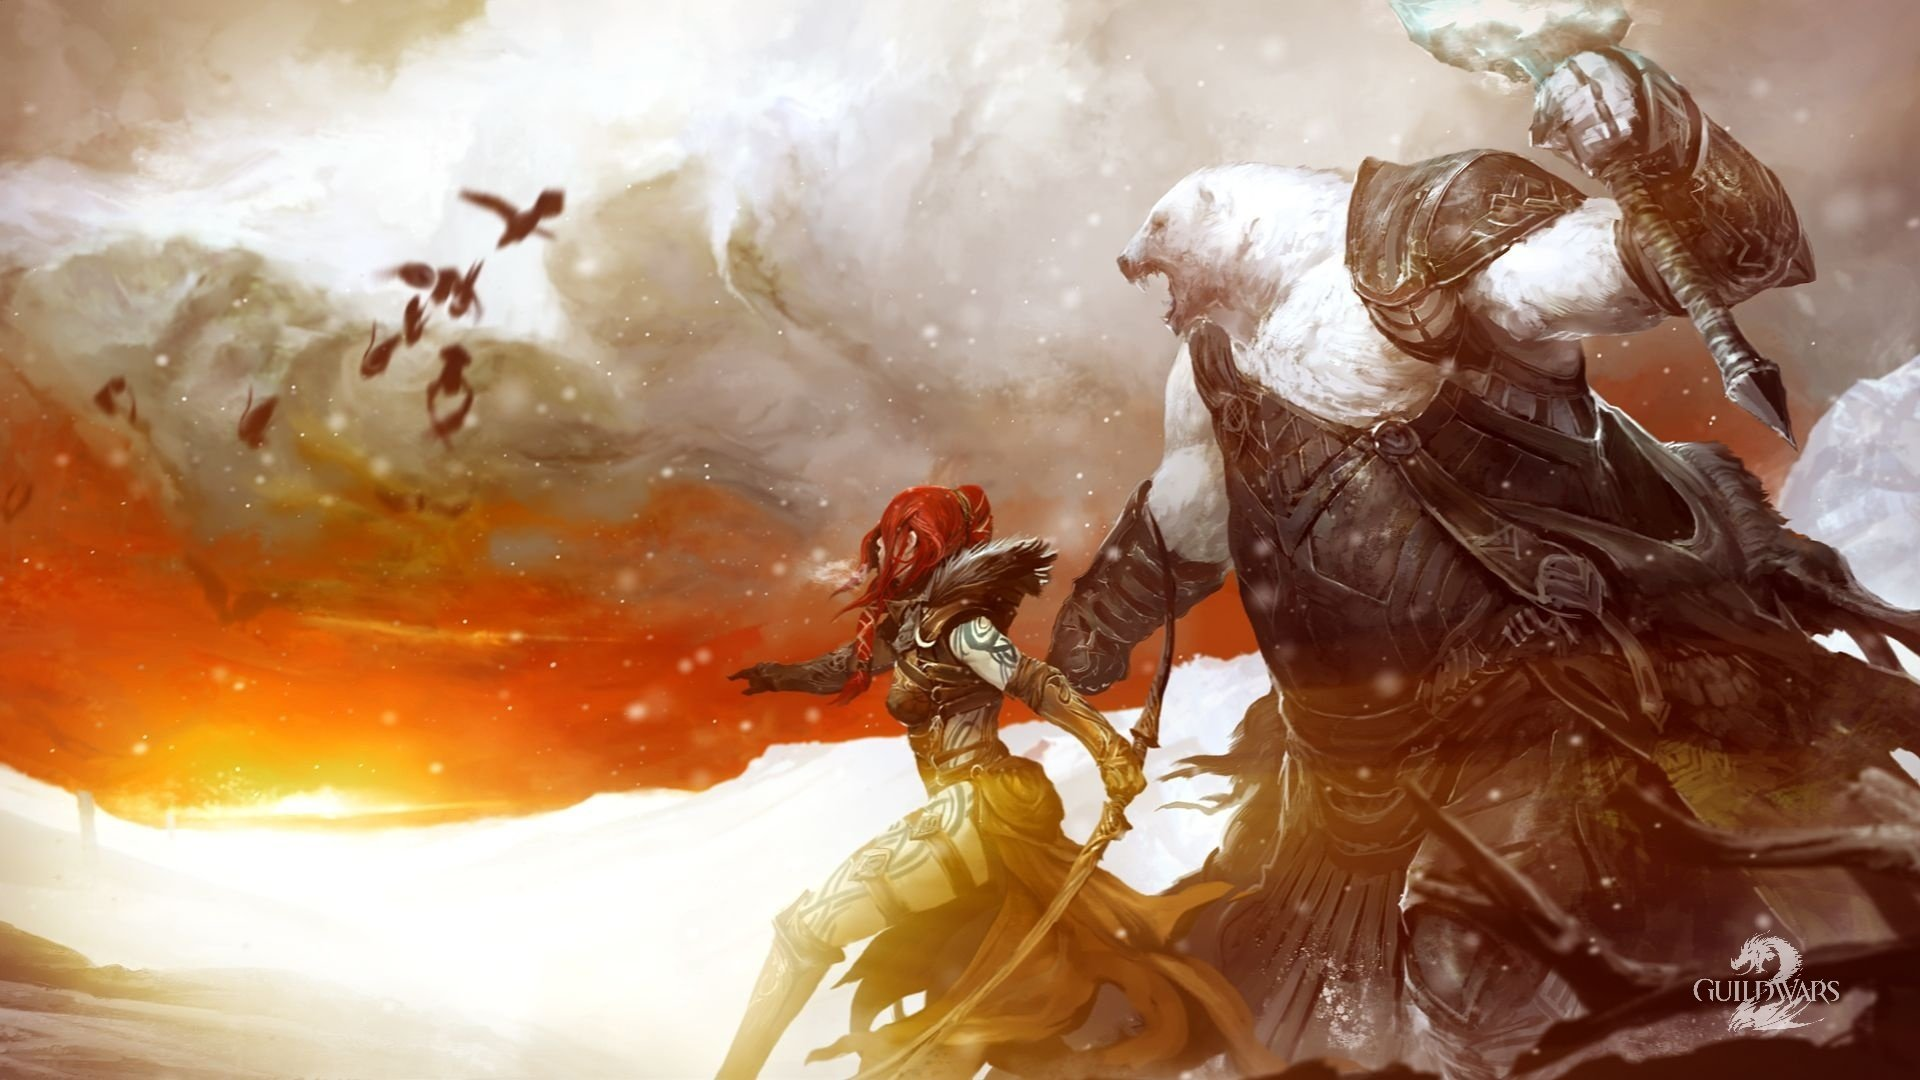 Free Download Guild Wars 2 Wallpaper Id 445035 1080p For Desktop